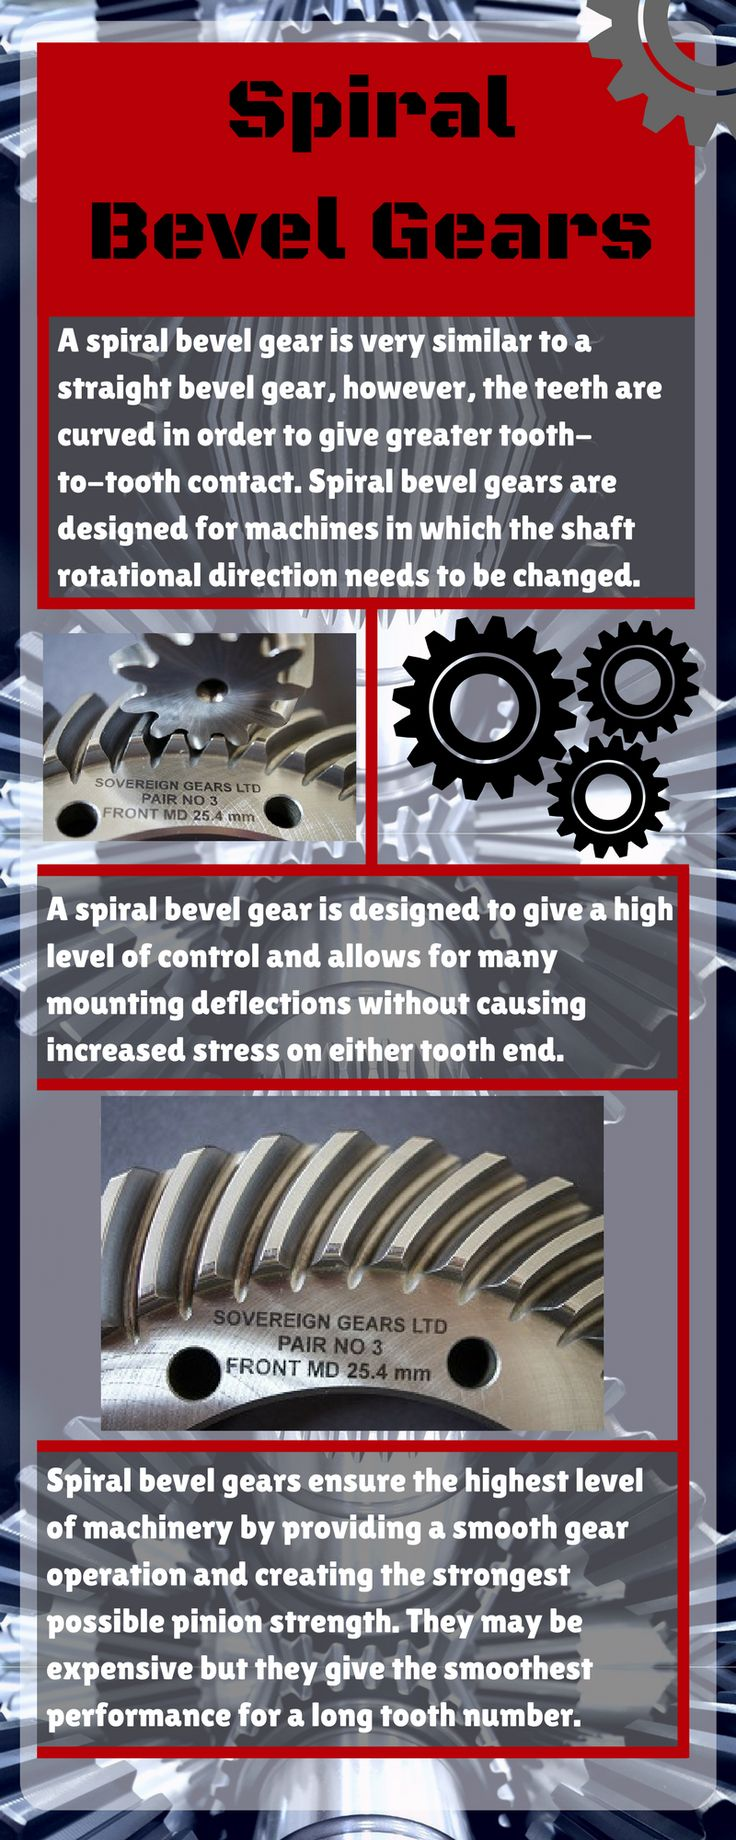 www.sovereigngears.com  Learn about spiral bevel gears here!